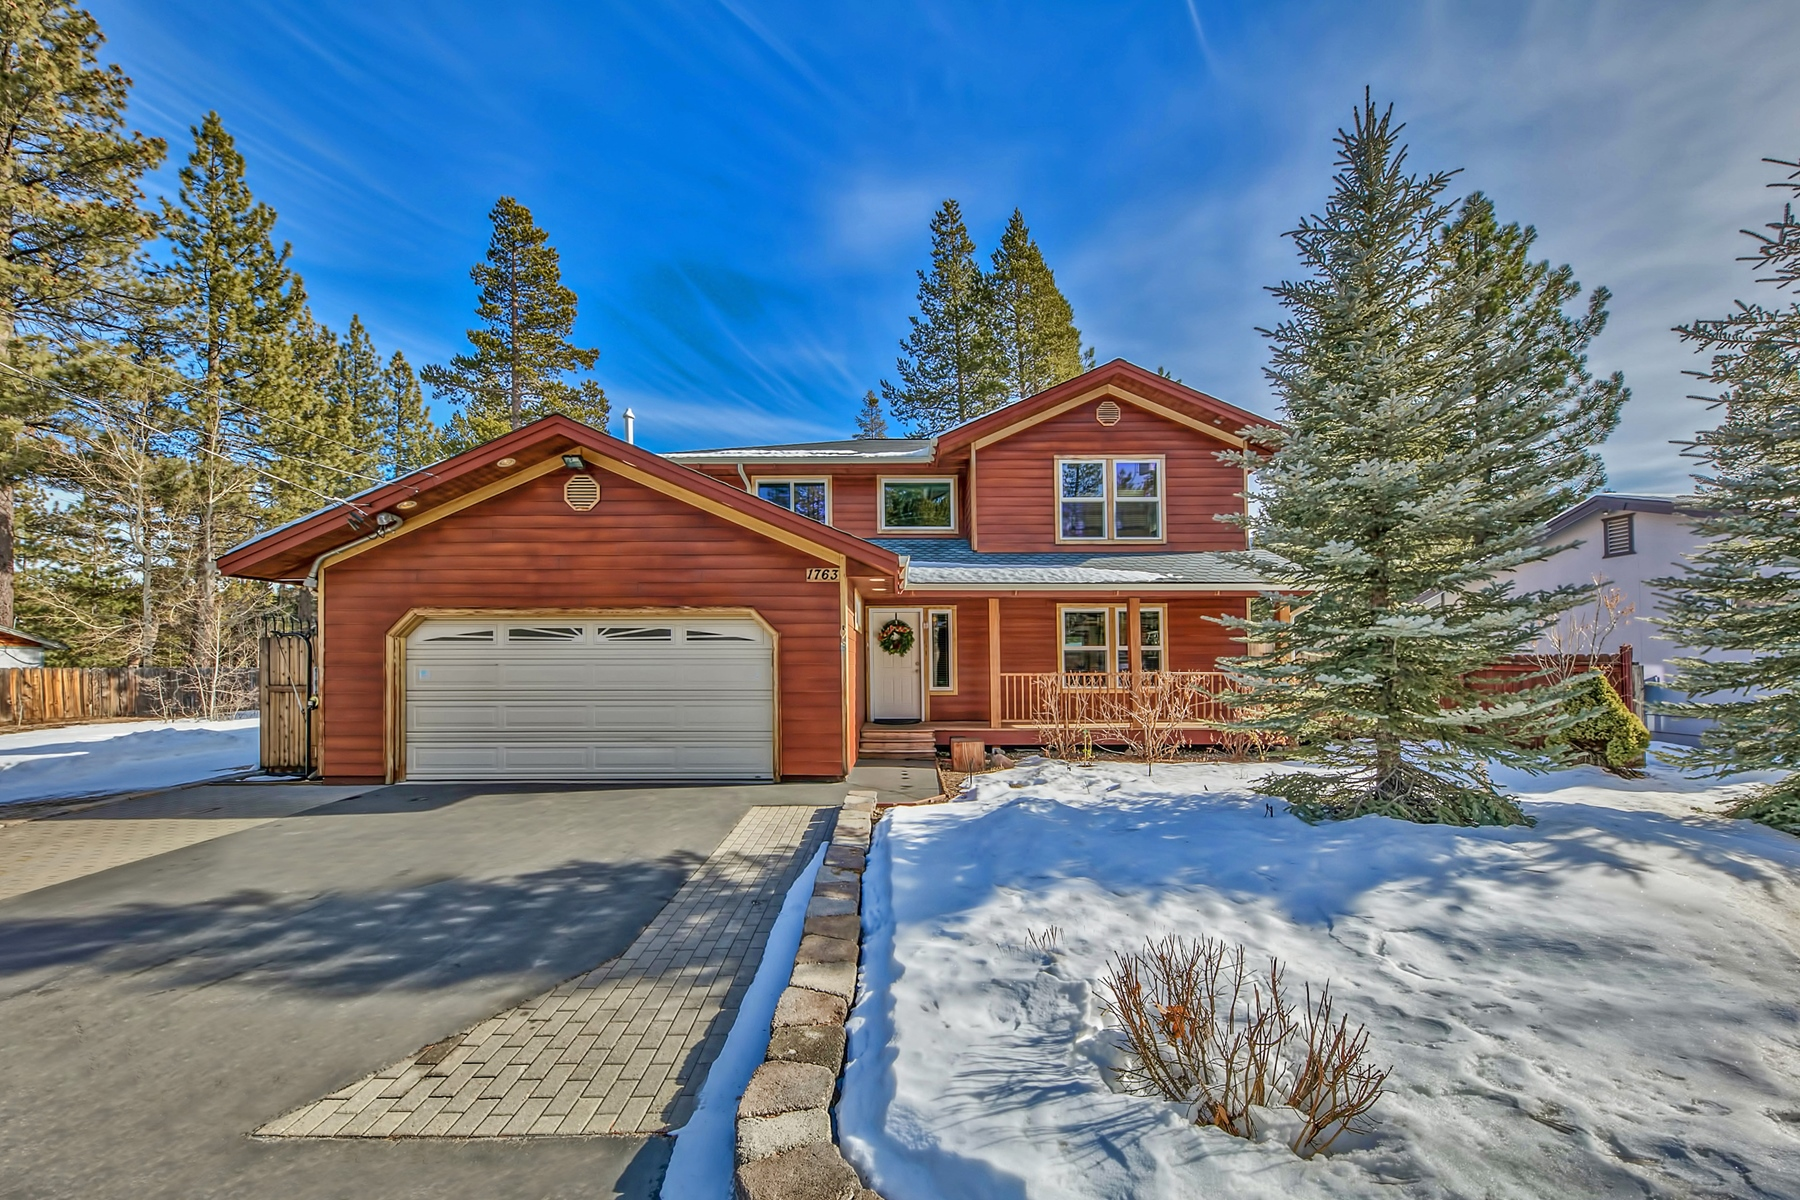 Single Family Home for Active at 1763 Arrowhead Ave, South Lake Tahoe, Ca 96150 1763 Arrowhead Ave. South Lake Tahoe, California 96150 United States